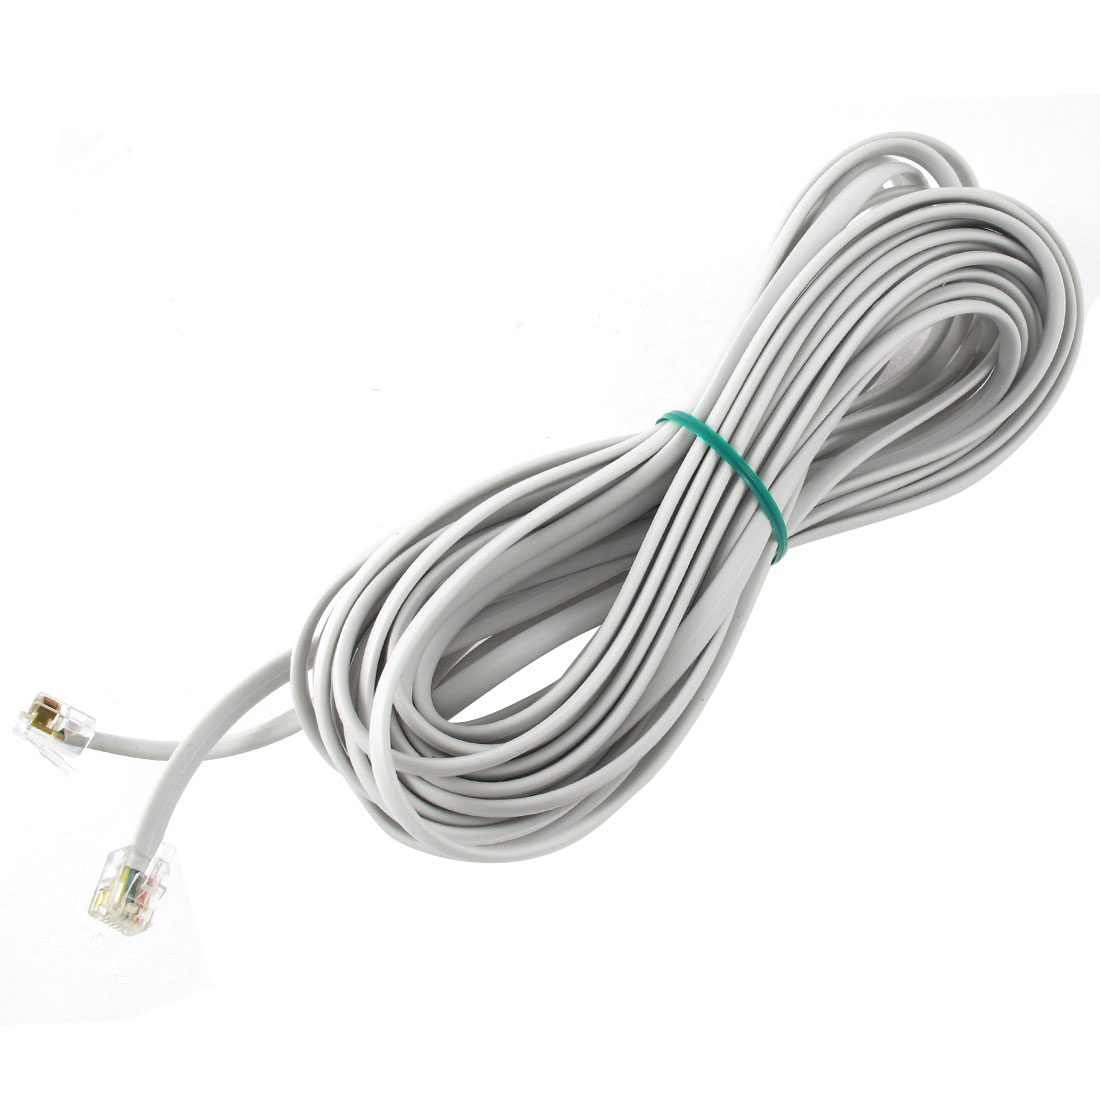 33Ft Length 6P6C RJ11 Telephone Extension Fax Modem Cable Line Grey